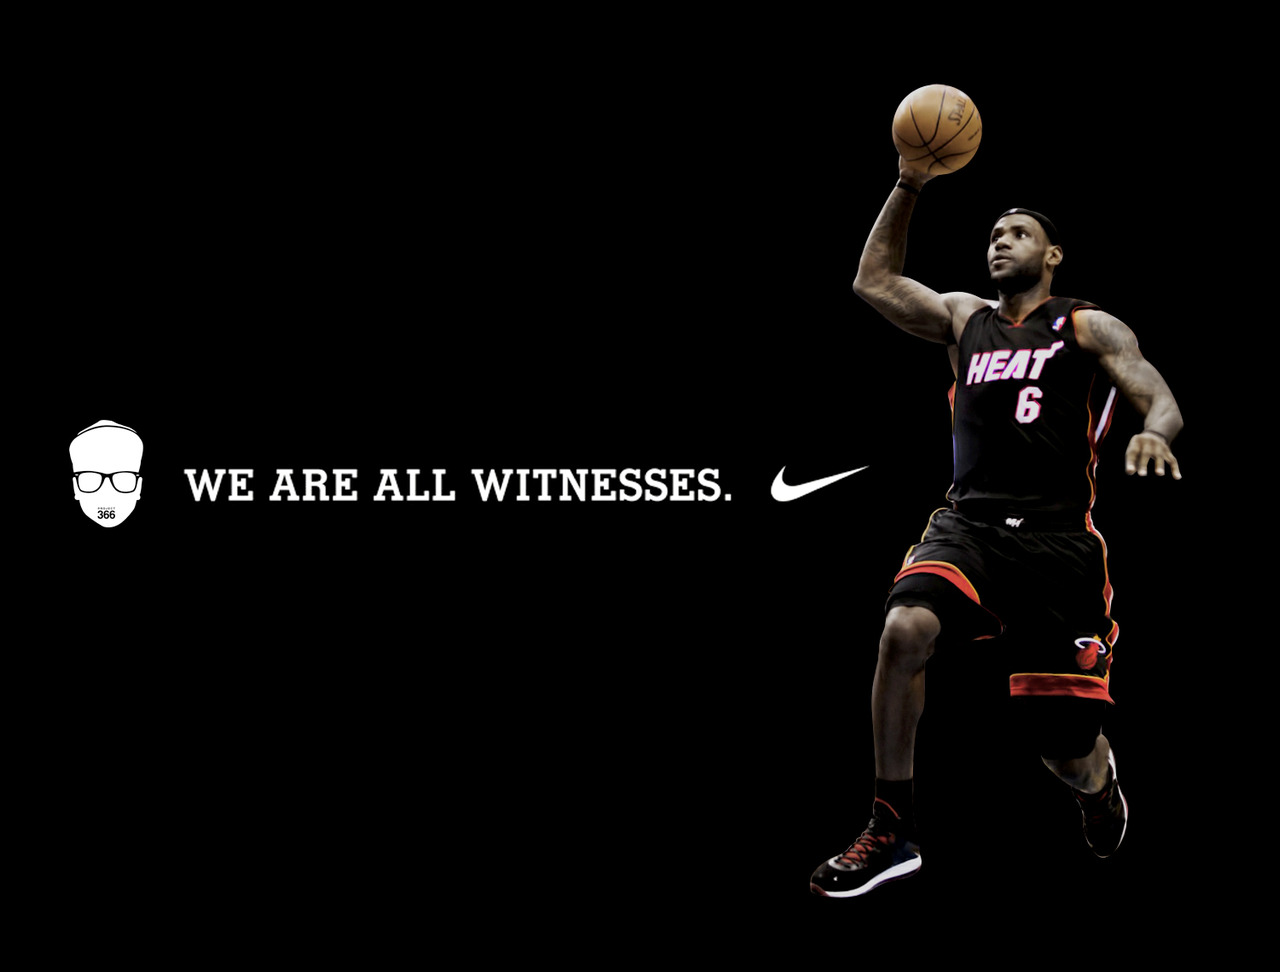 lebron james we are all witnesses poster lebron james wallpaper lebron 1280x972